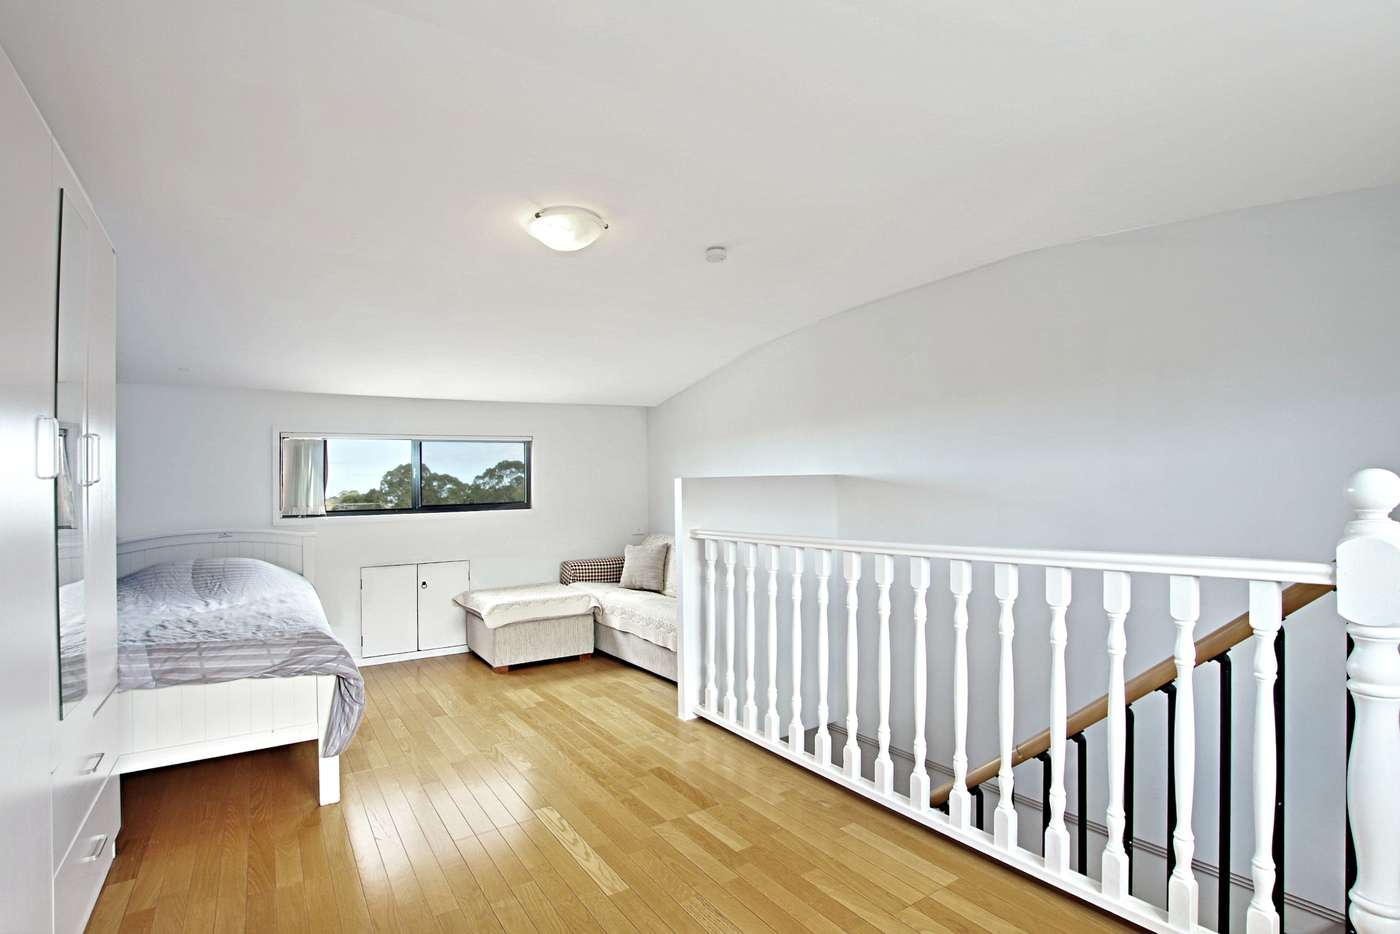 Sixth view of Homely apartment listing, 9/14-18 Connells Point Road, South Hurstville NSW 2221